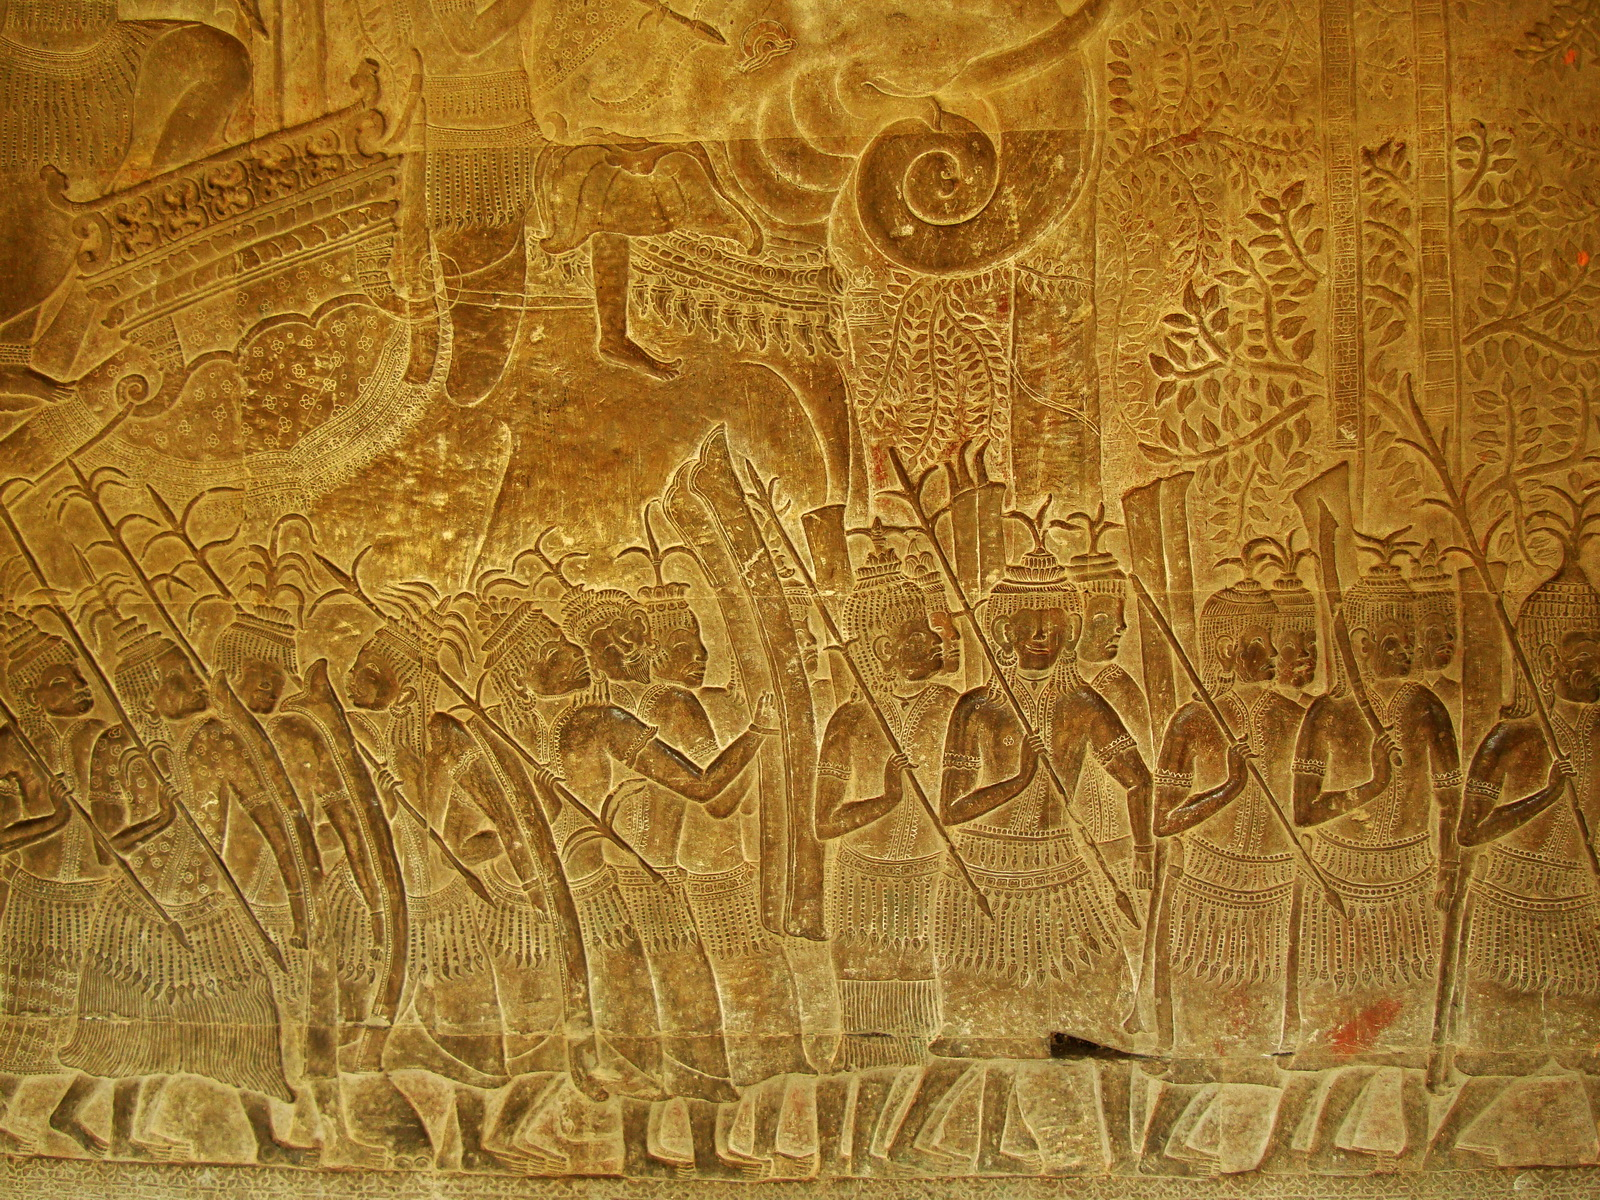 Angkor Wat Bas relief S Gallery W Wing Historic Procession 109